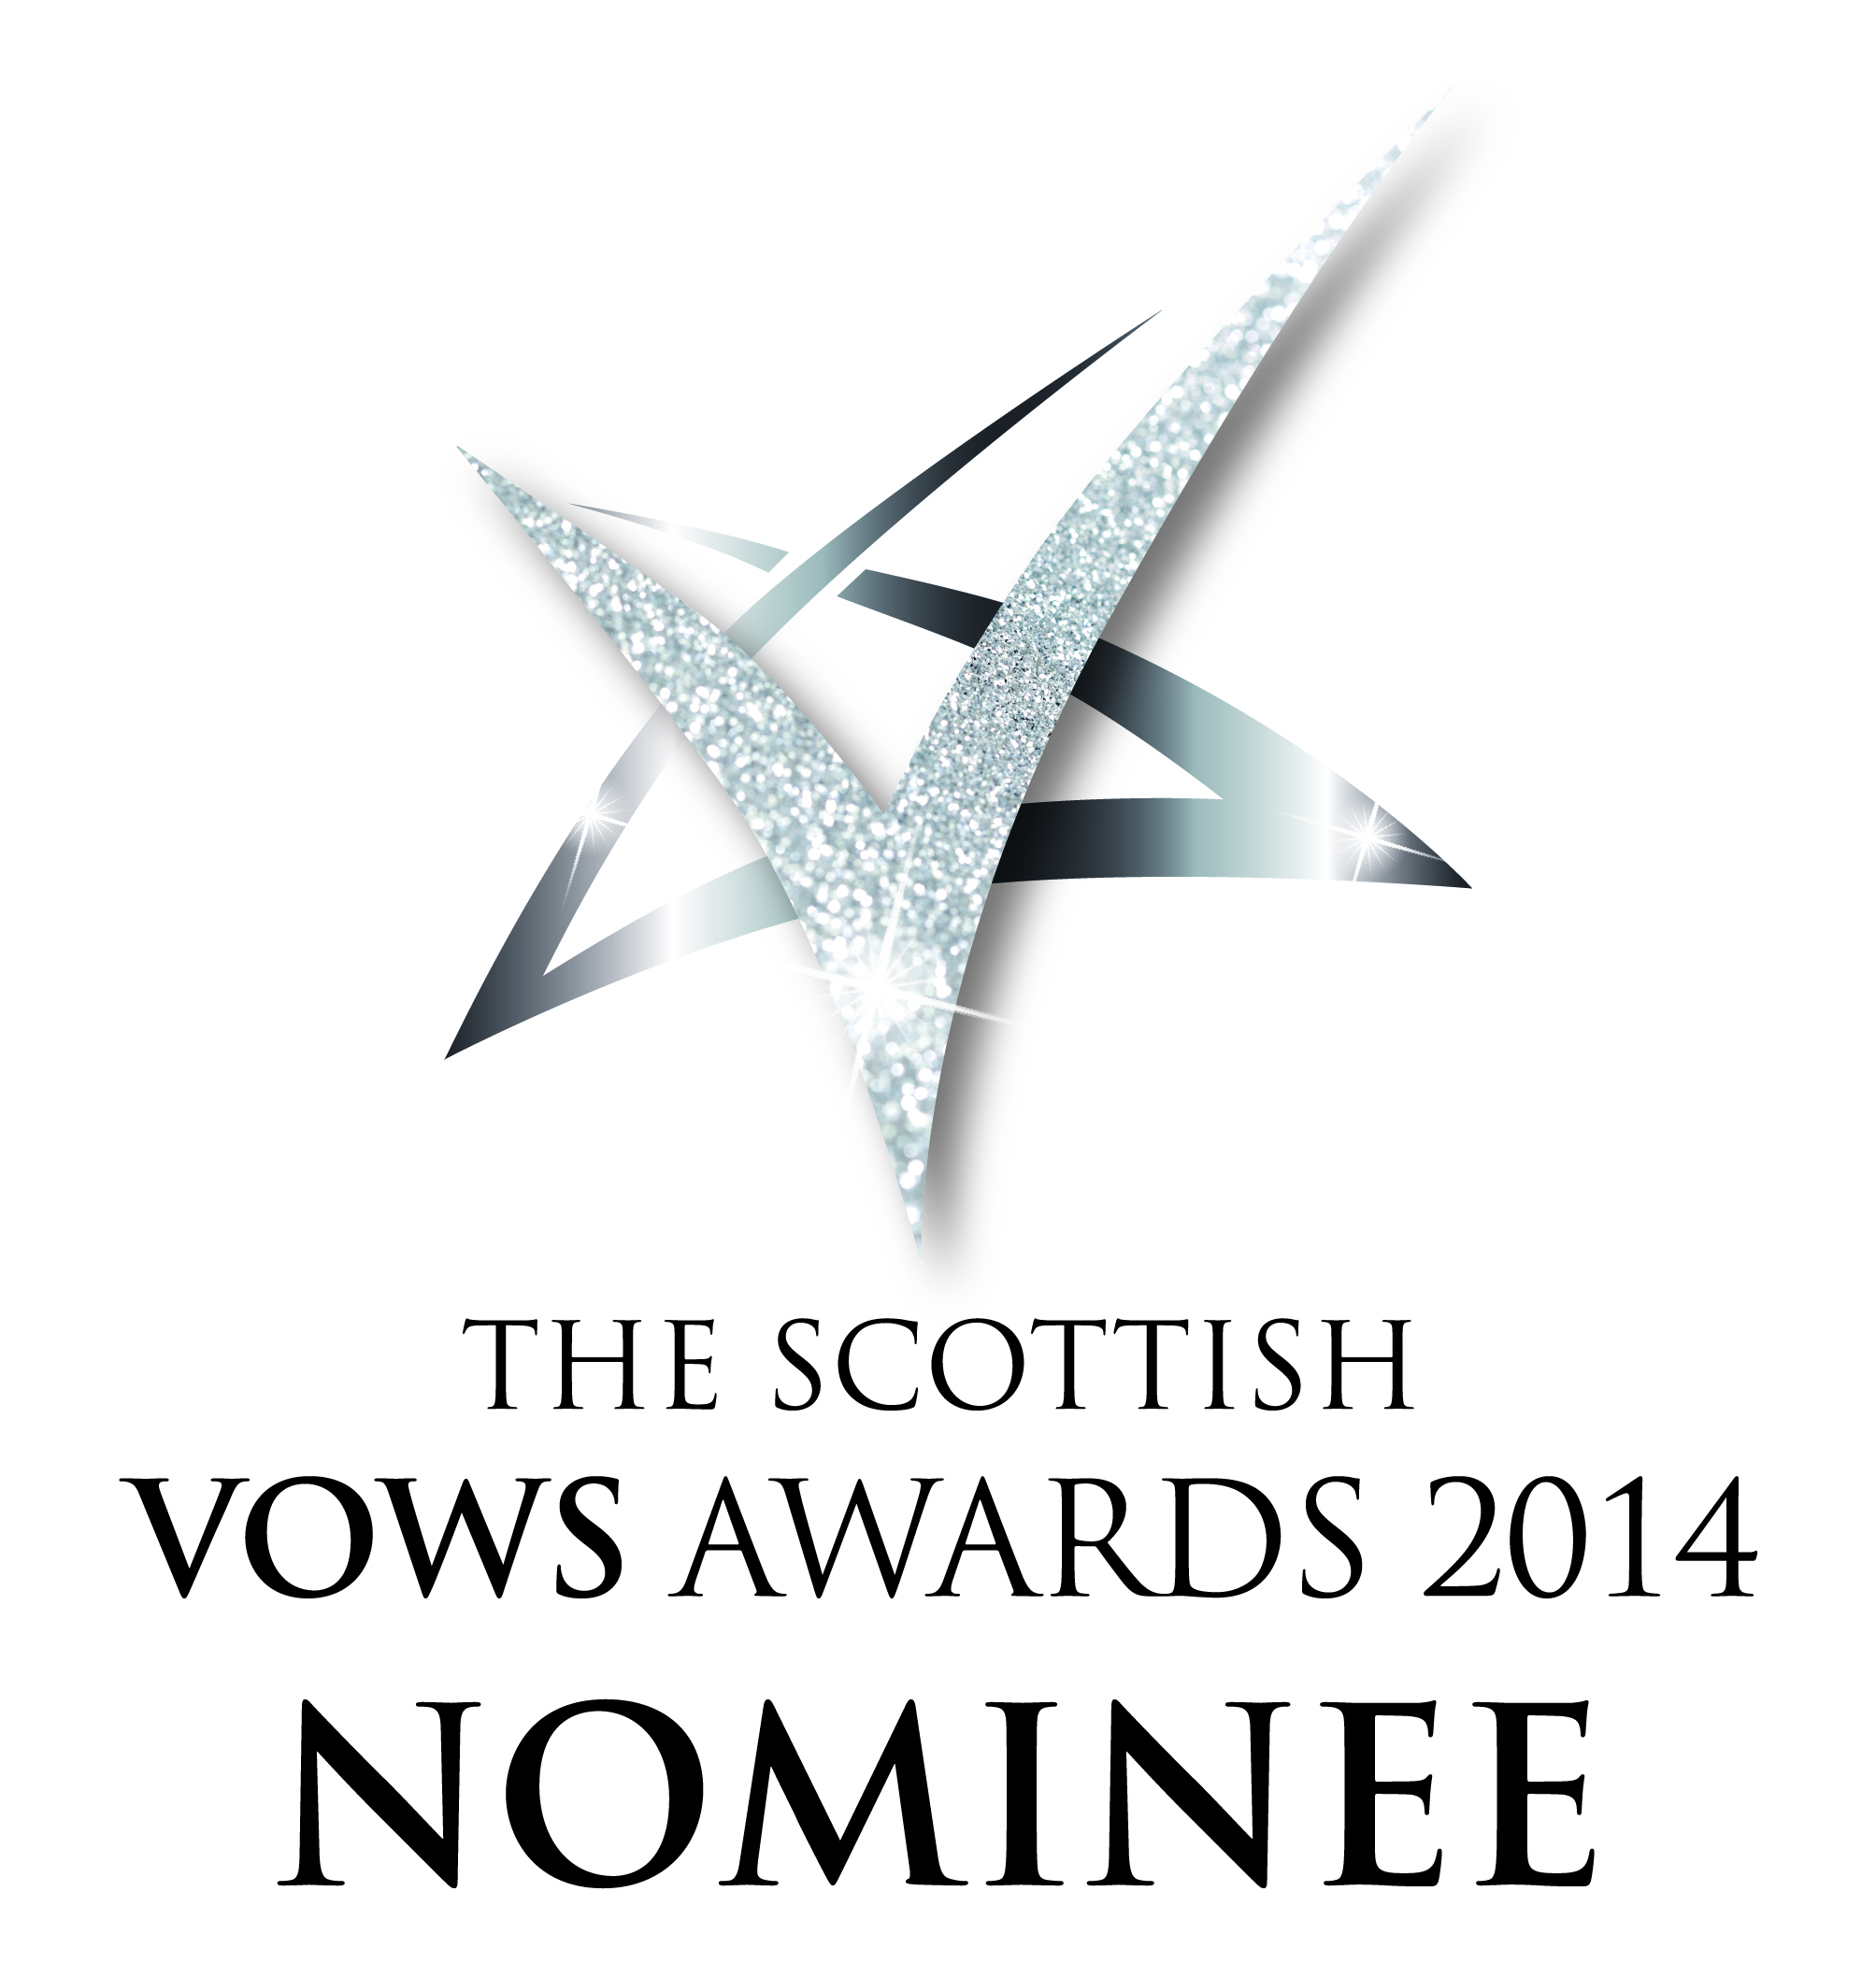 VOWS LOGO nominee.jpg